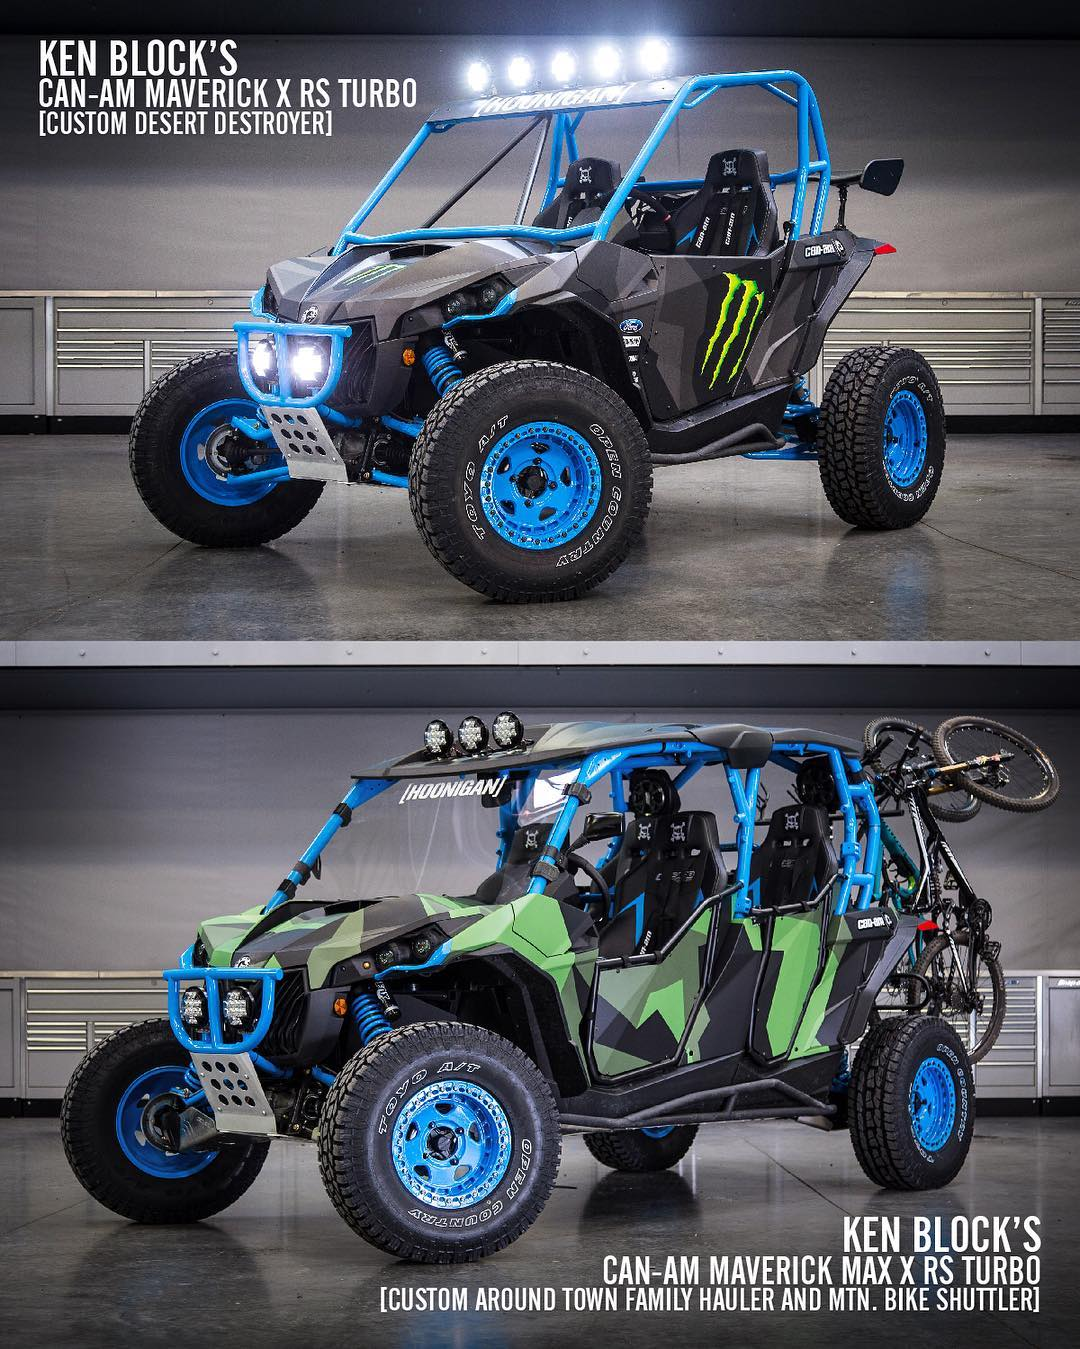 Remember those two rad @CanAmOfficial Maverick-X RS Turbo UTVs I showed you earlier this year? Yeah, there's no way they were going to stay stock for long. Ha. So we built each one with two different purposes: a two-door desert destroyer for rally and...